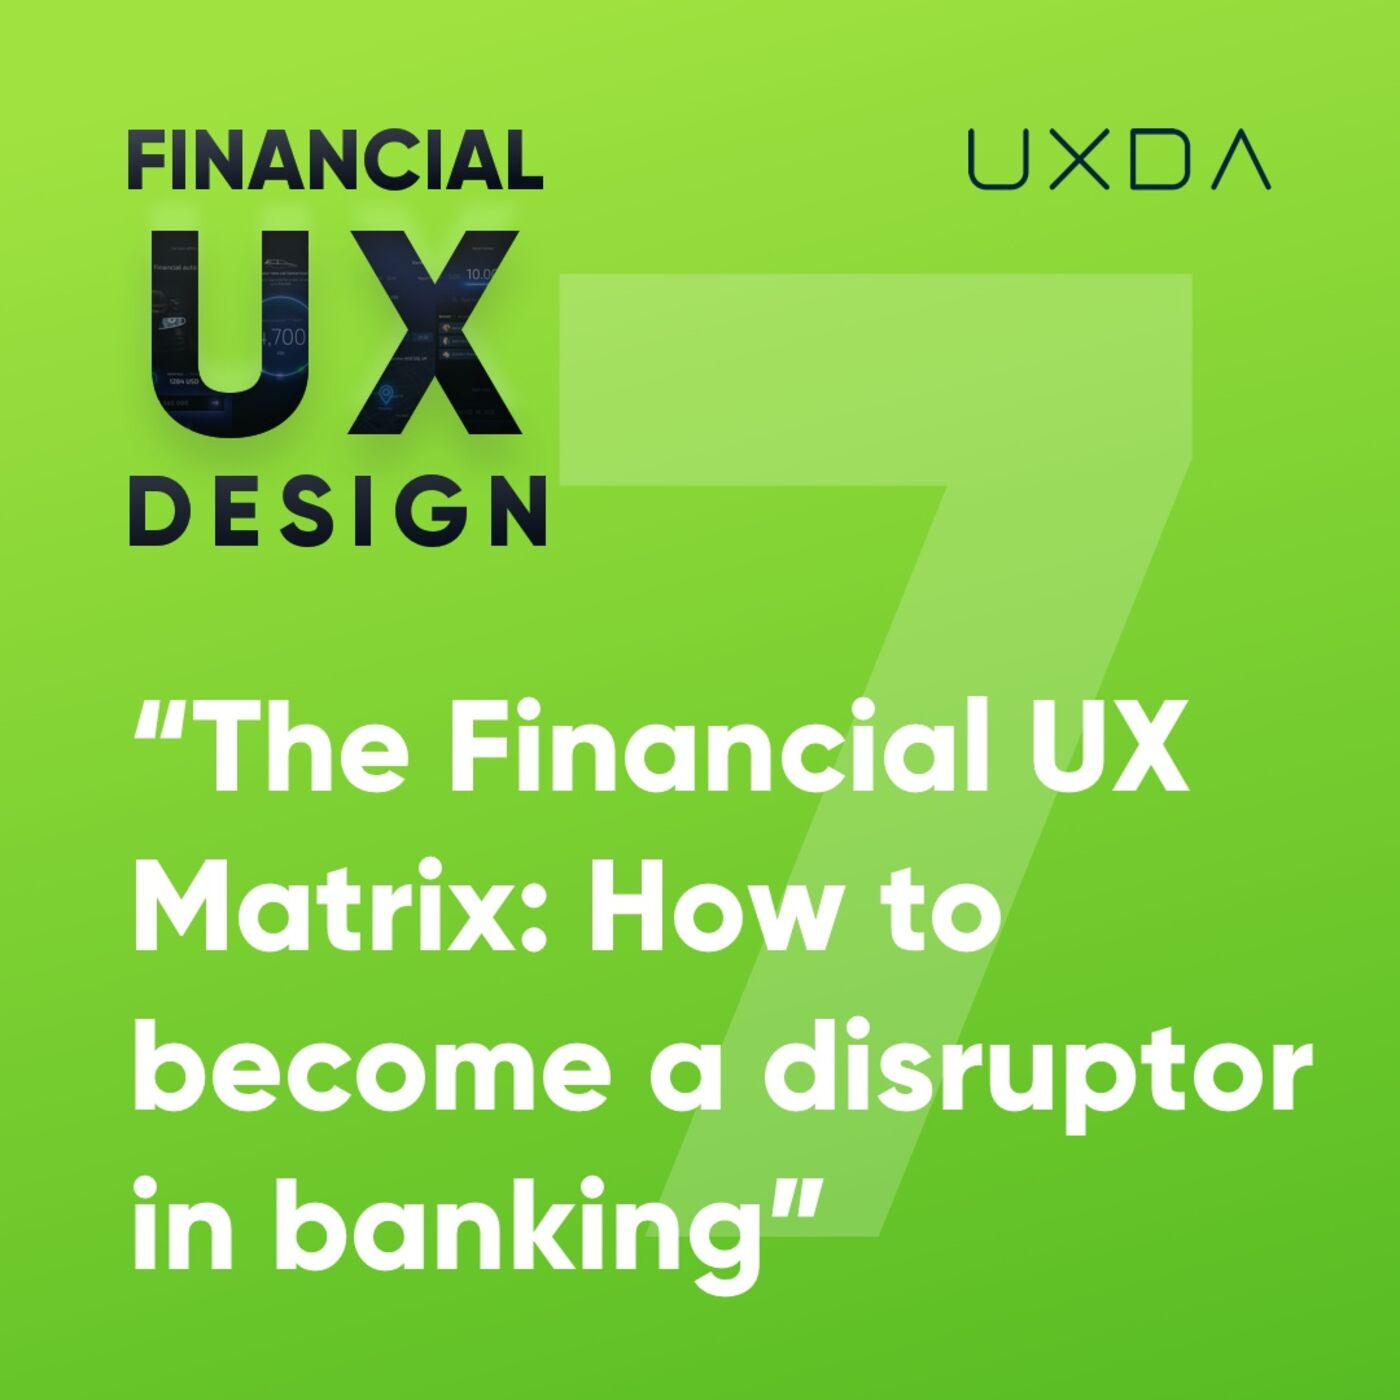 #7 How to Become a Disruptor in Banking: The Financial UX Matrix